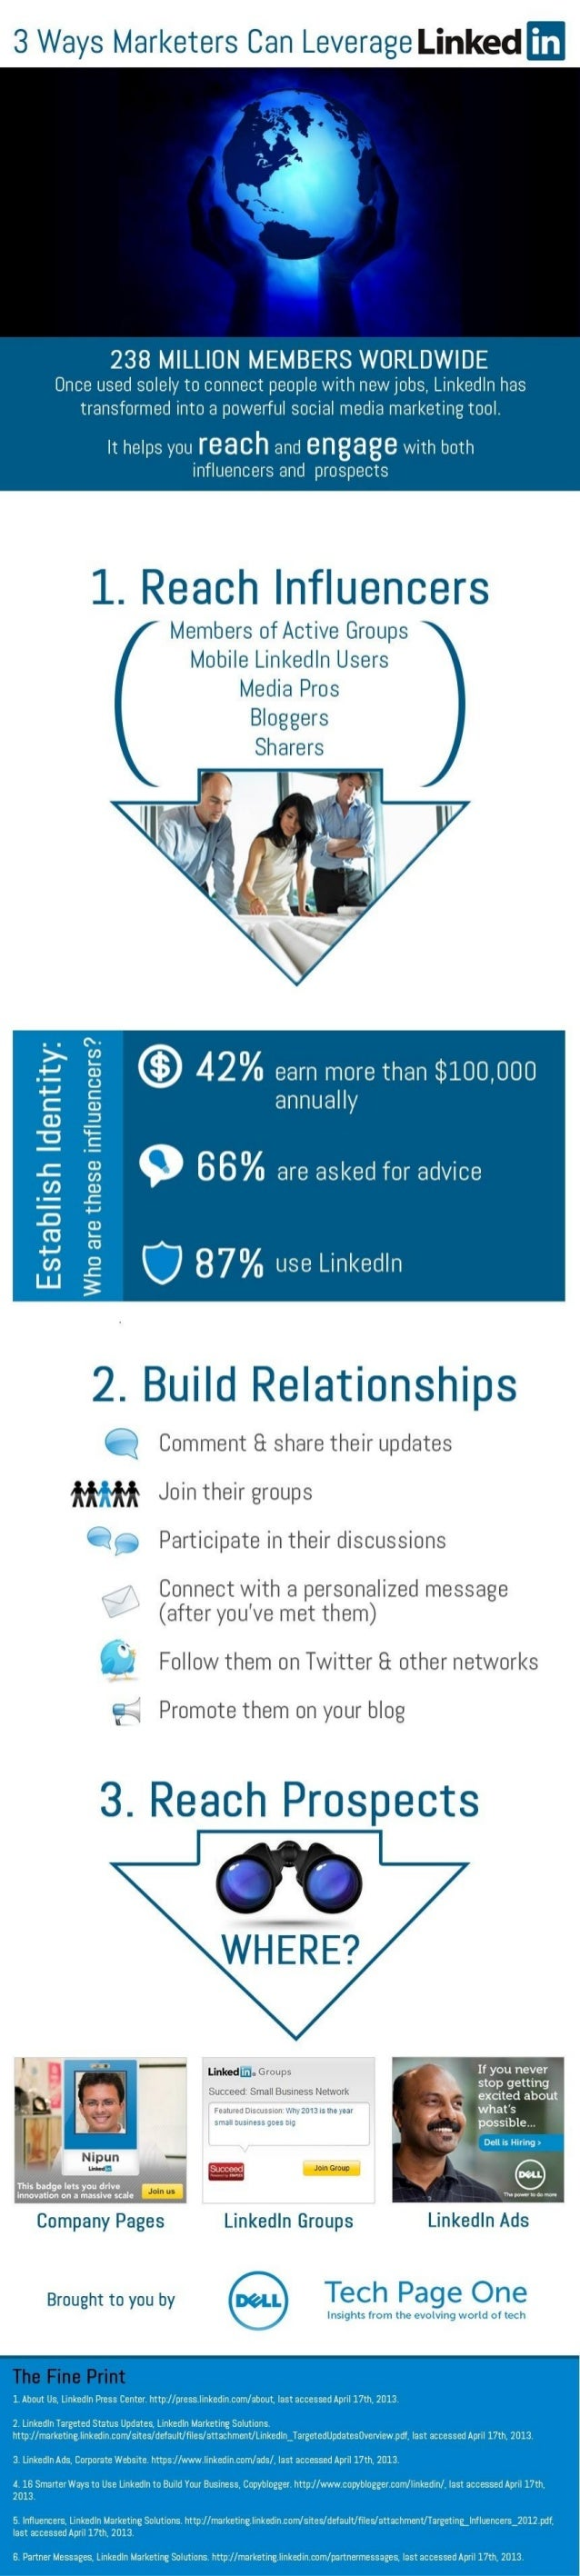 3 Ways Marketers Can Leverage LinkedIn